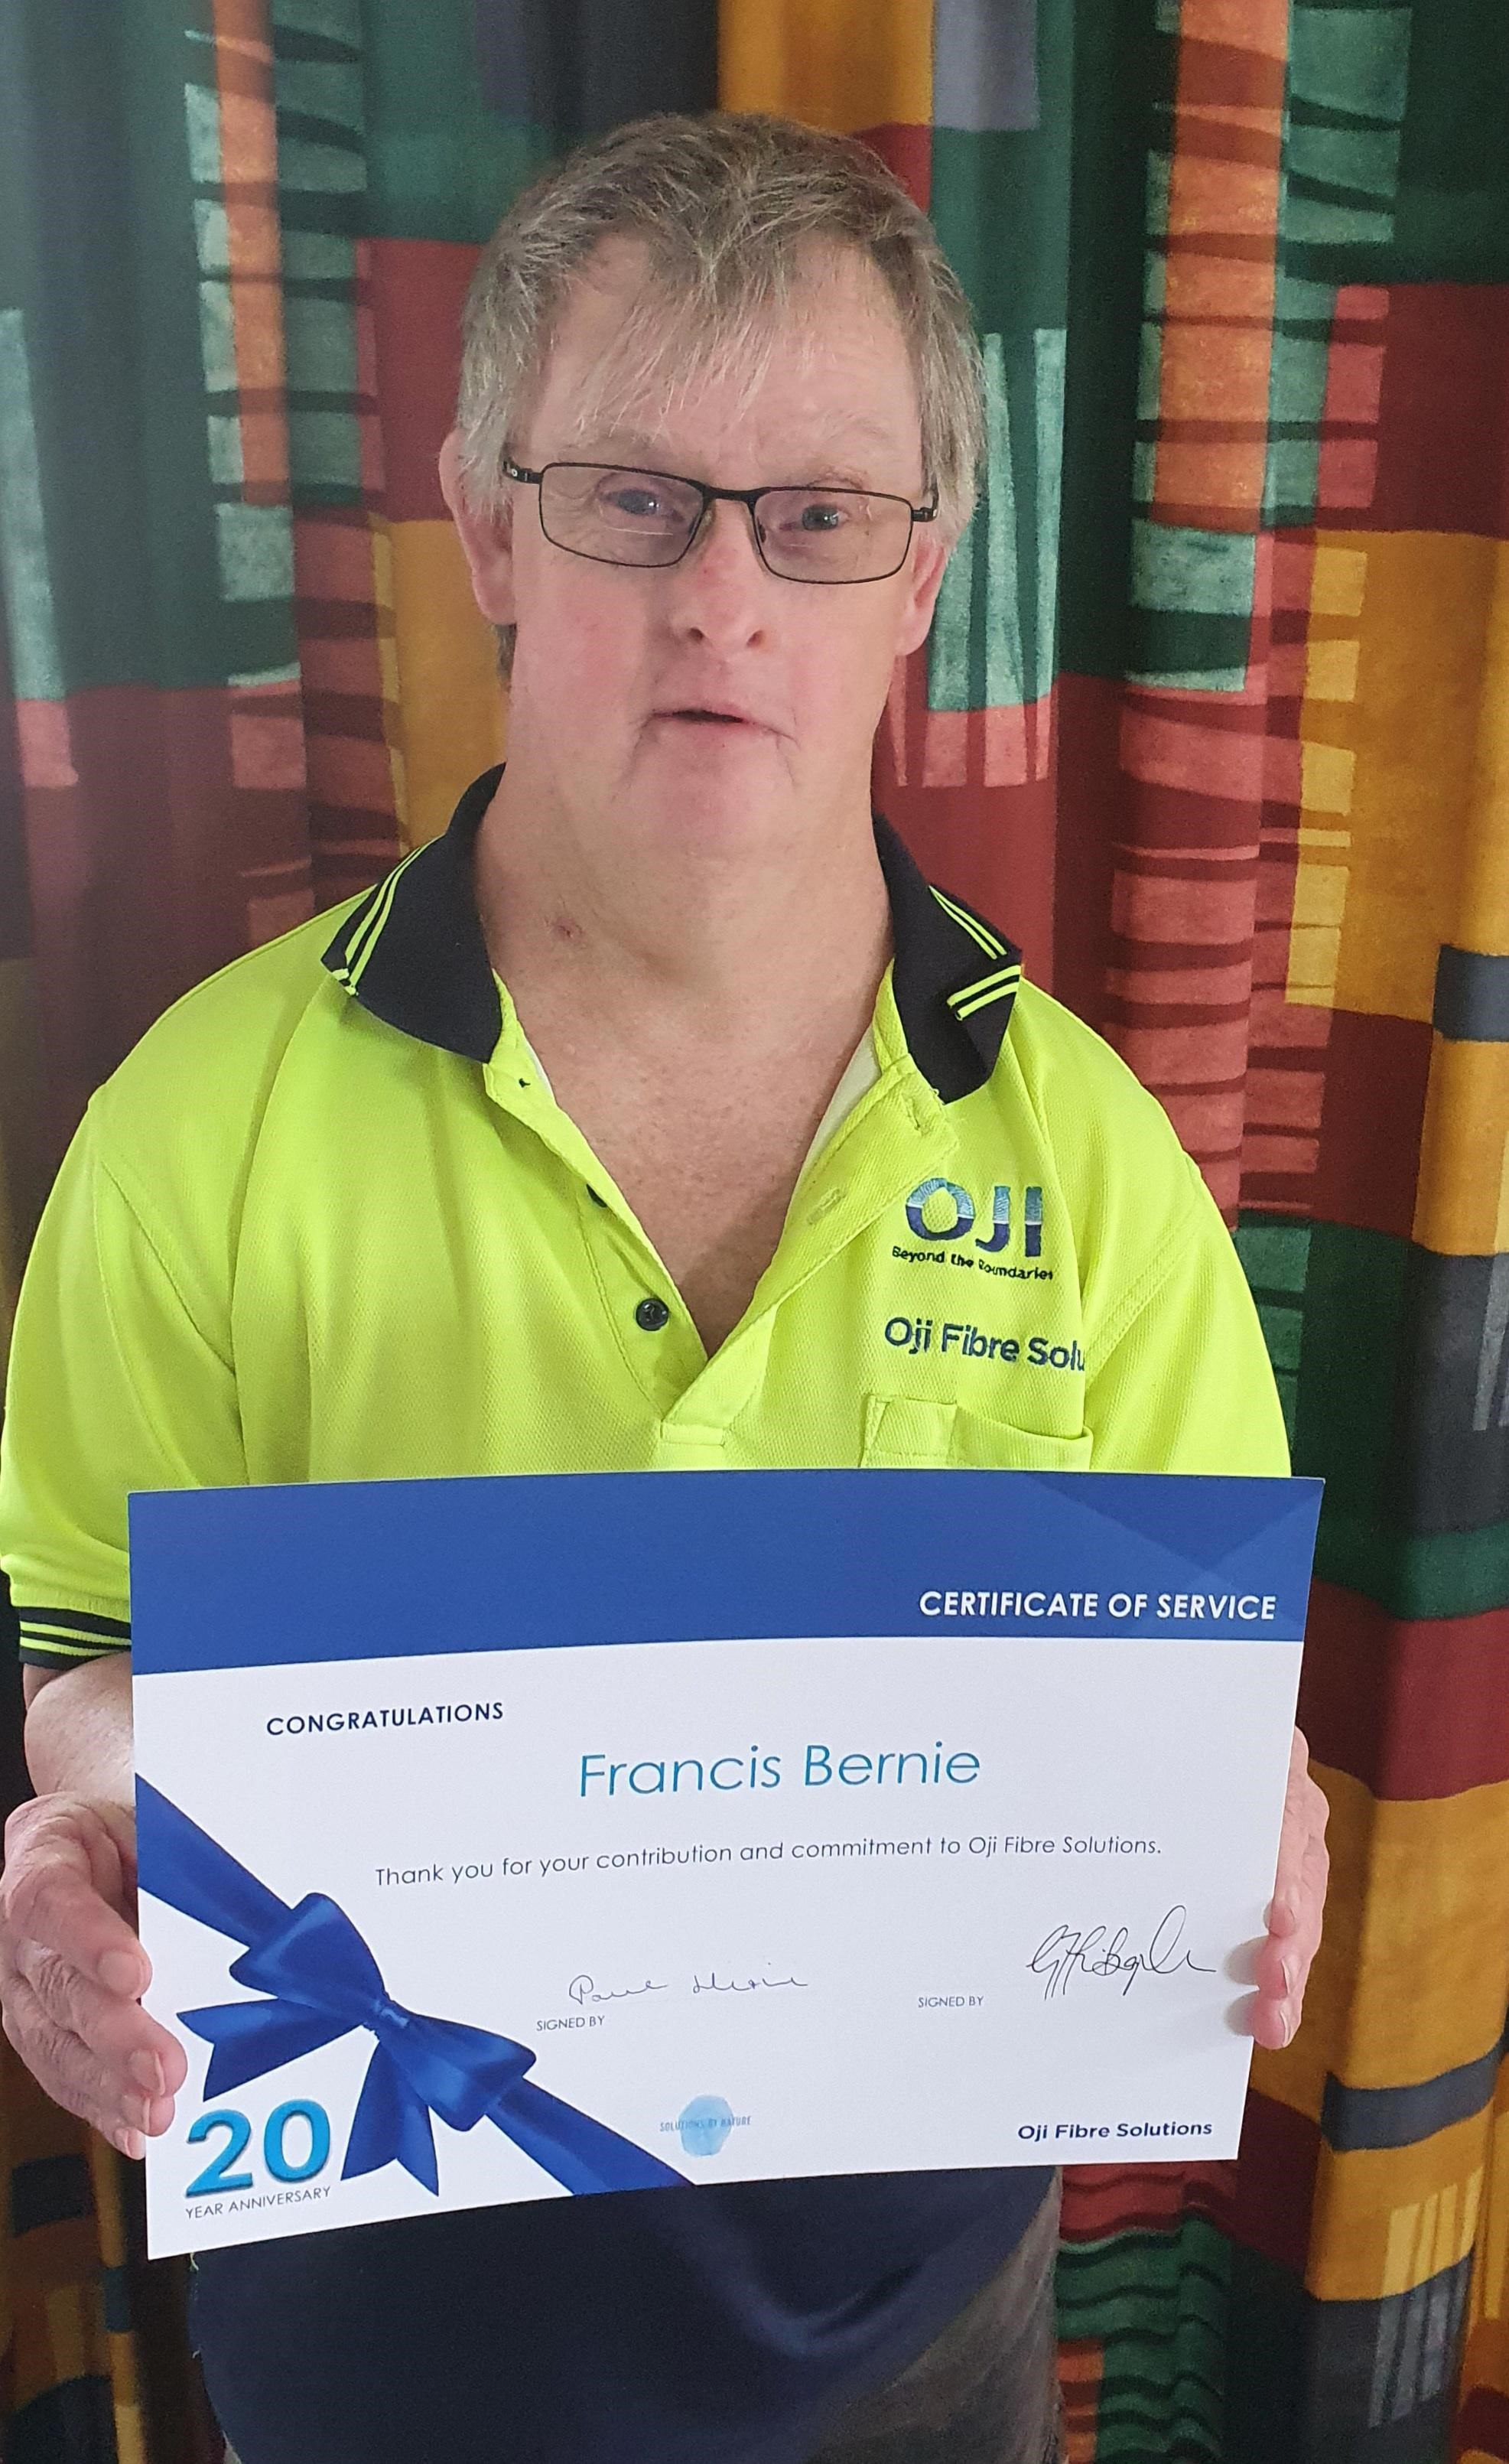 Francis Bernie is proud of his part-time role, that IDEA Services helped secure.